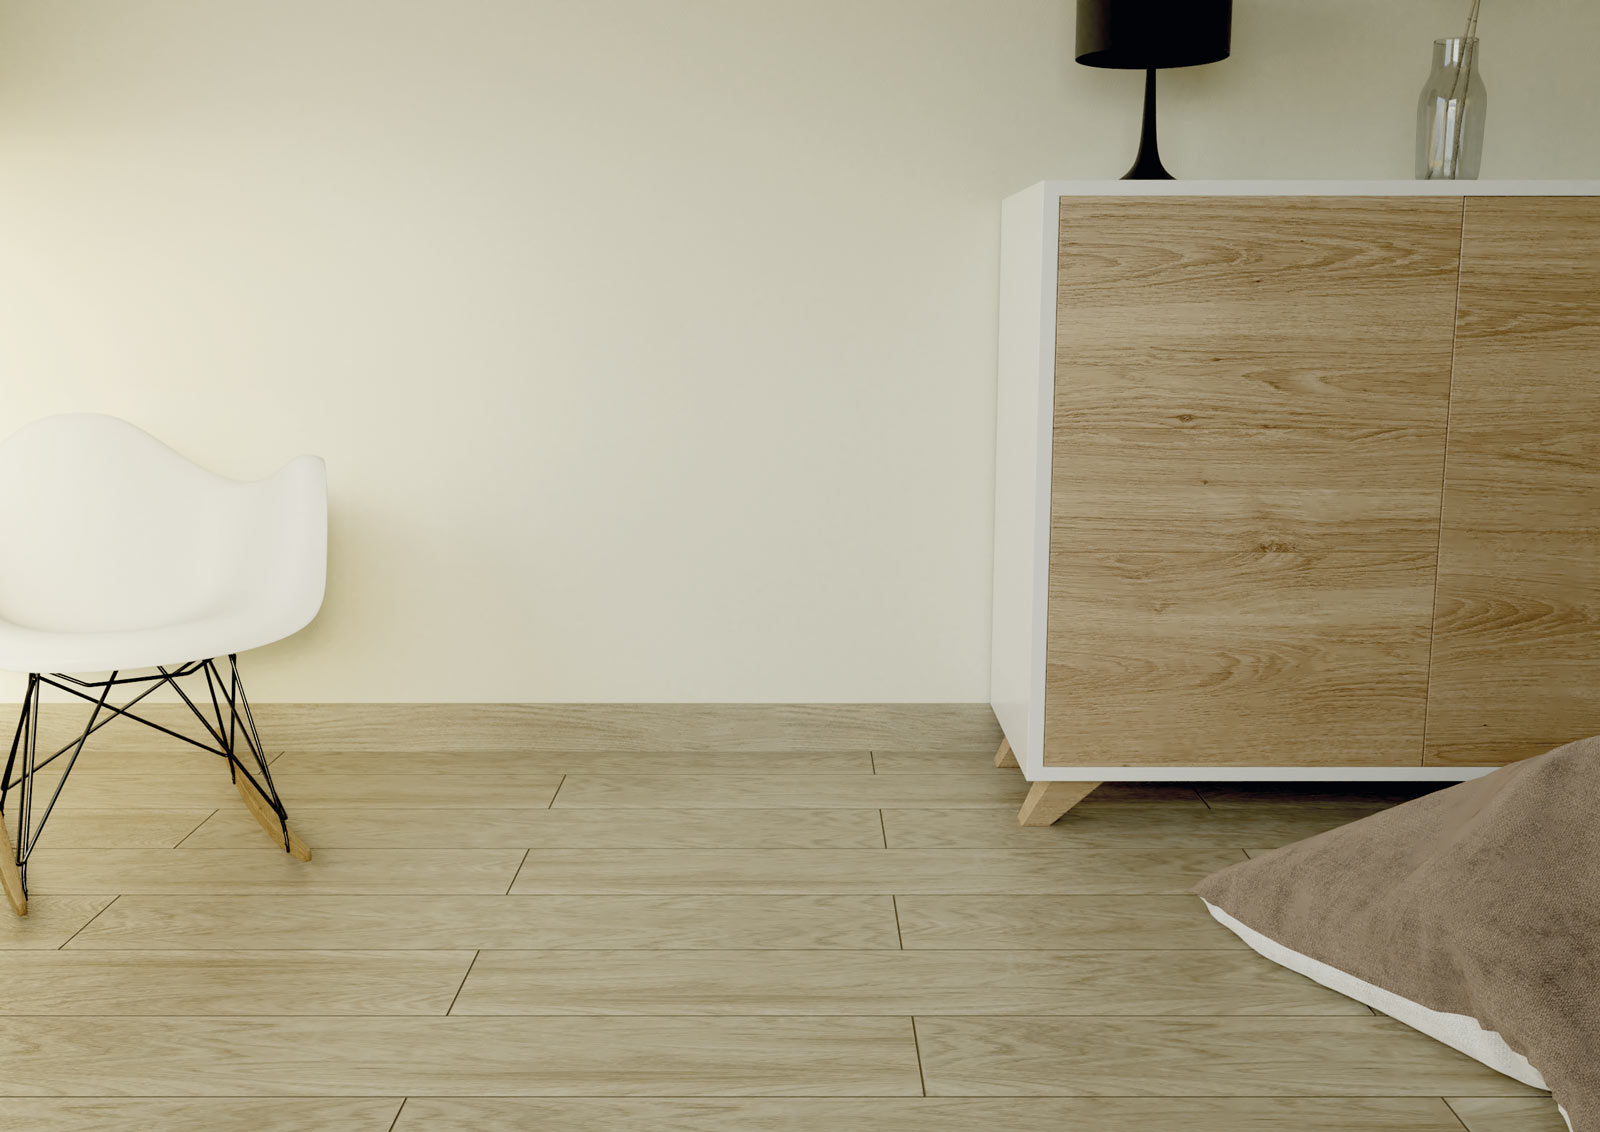 Skirting tiles, good looks and practicality for flooring